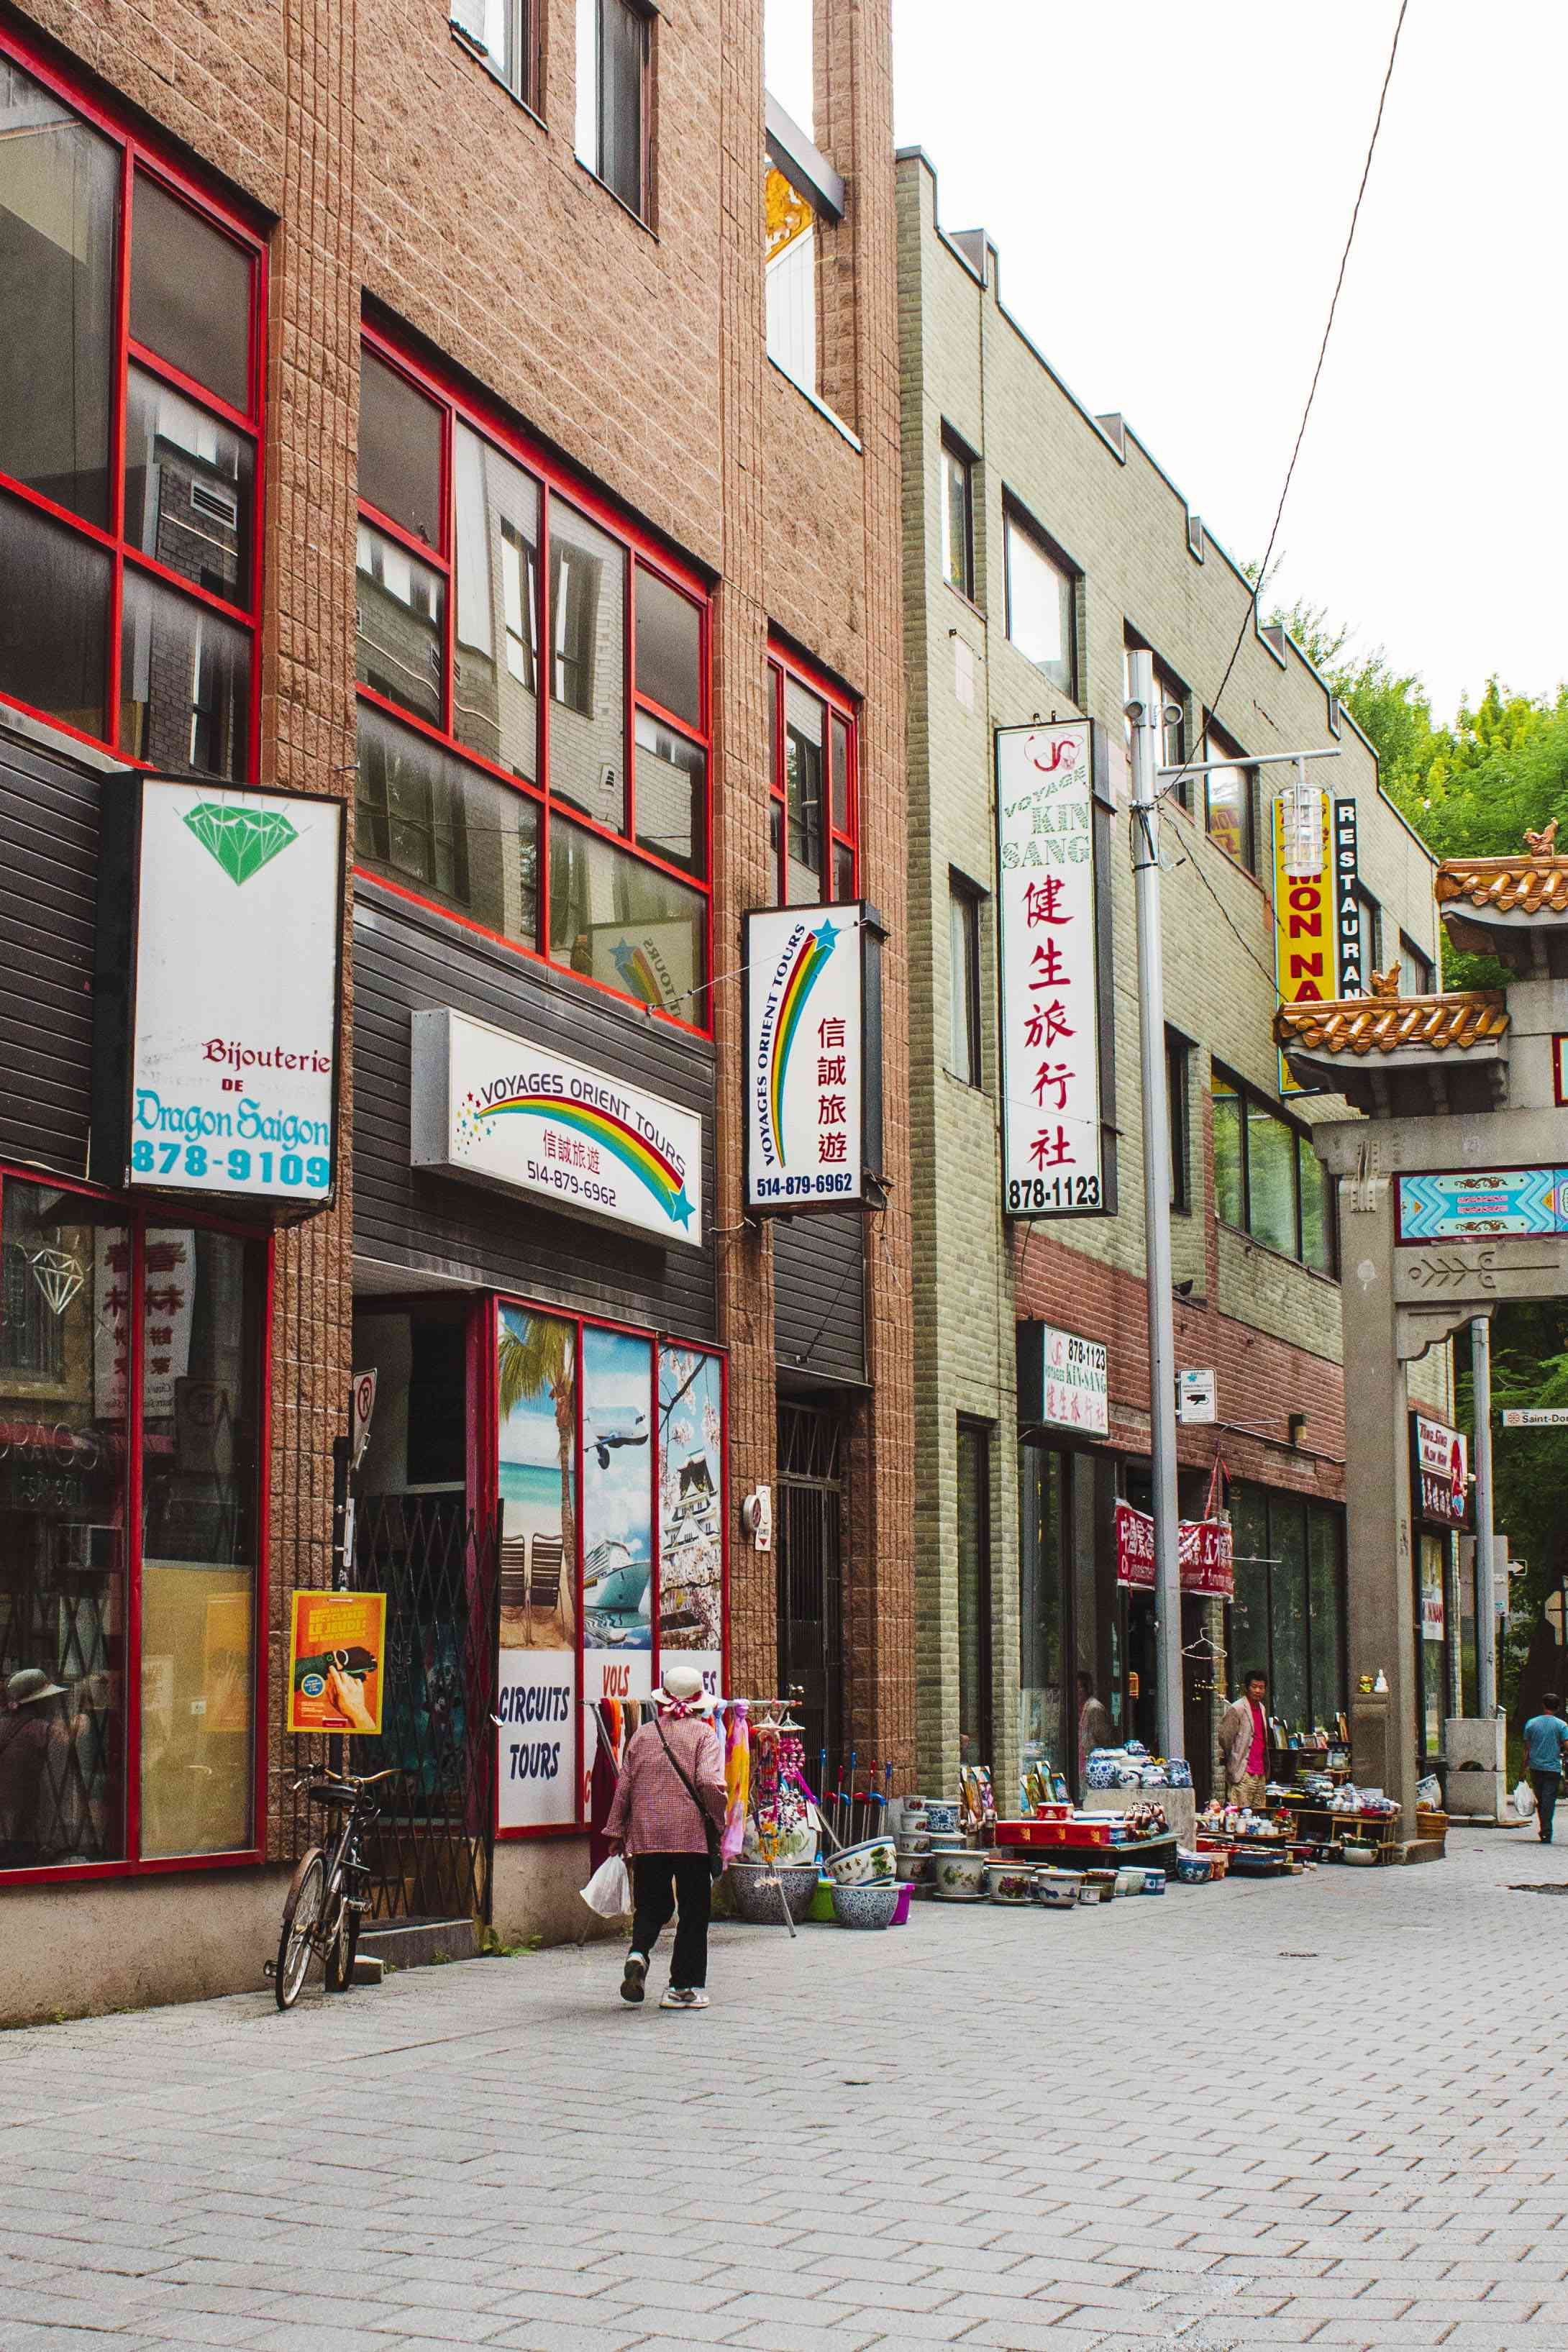 Shops in Montreal's Chinatown